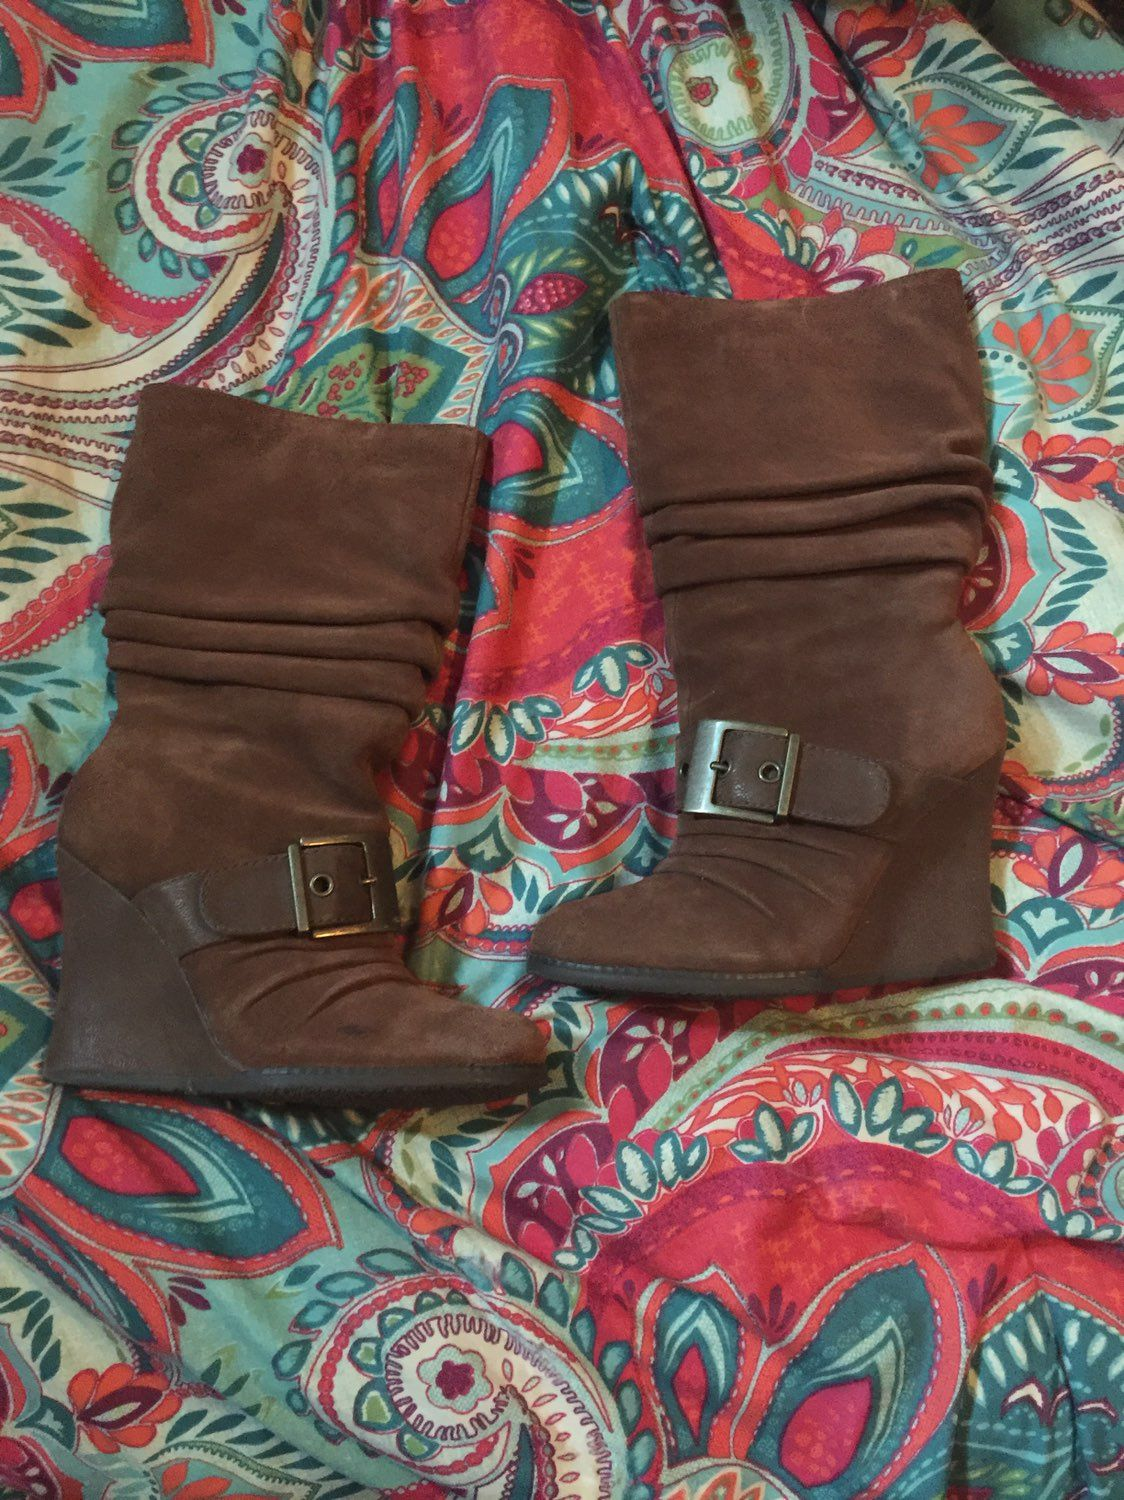 Brown Suede Dr. Scholl's Wedge Boots 6.5